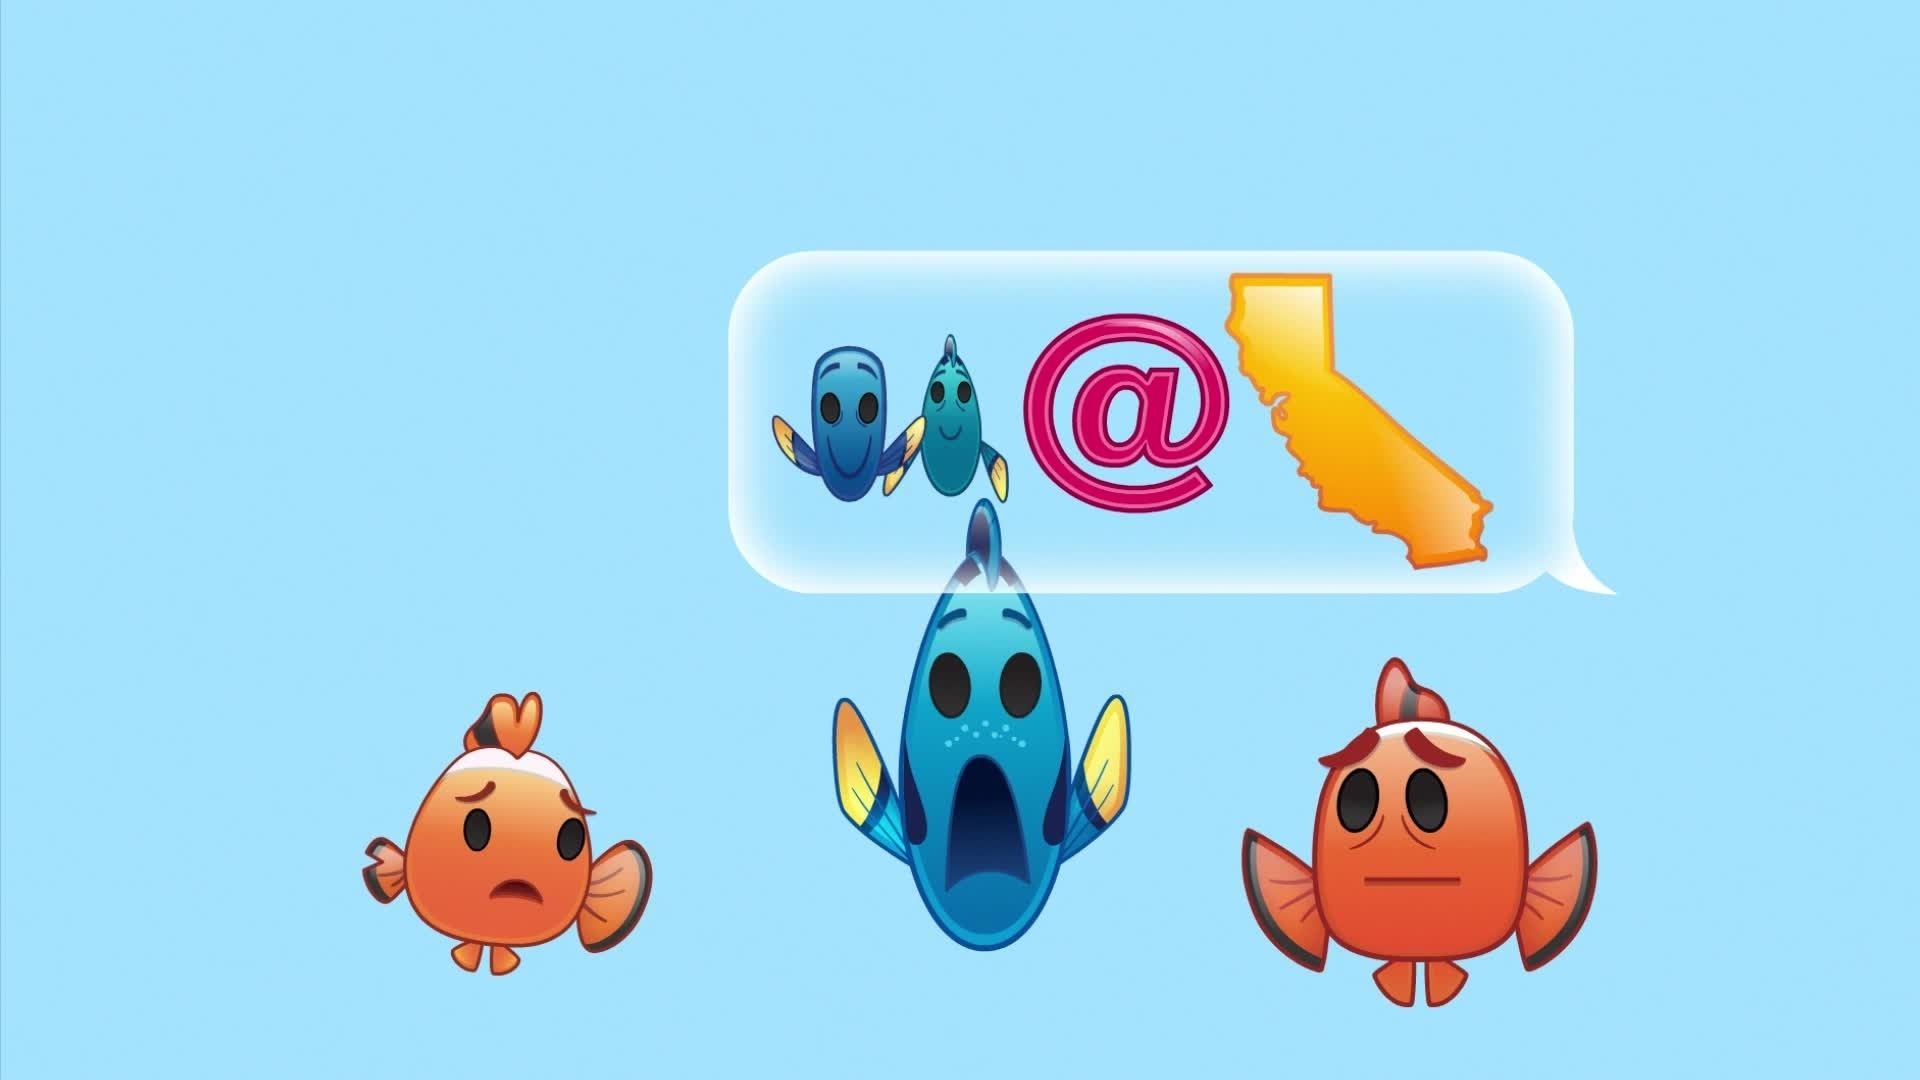 Finding Dory - As Told By Emoji